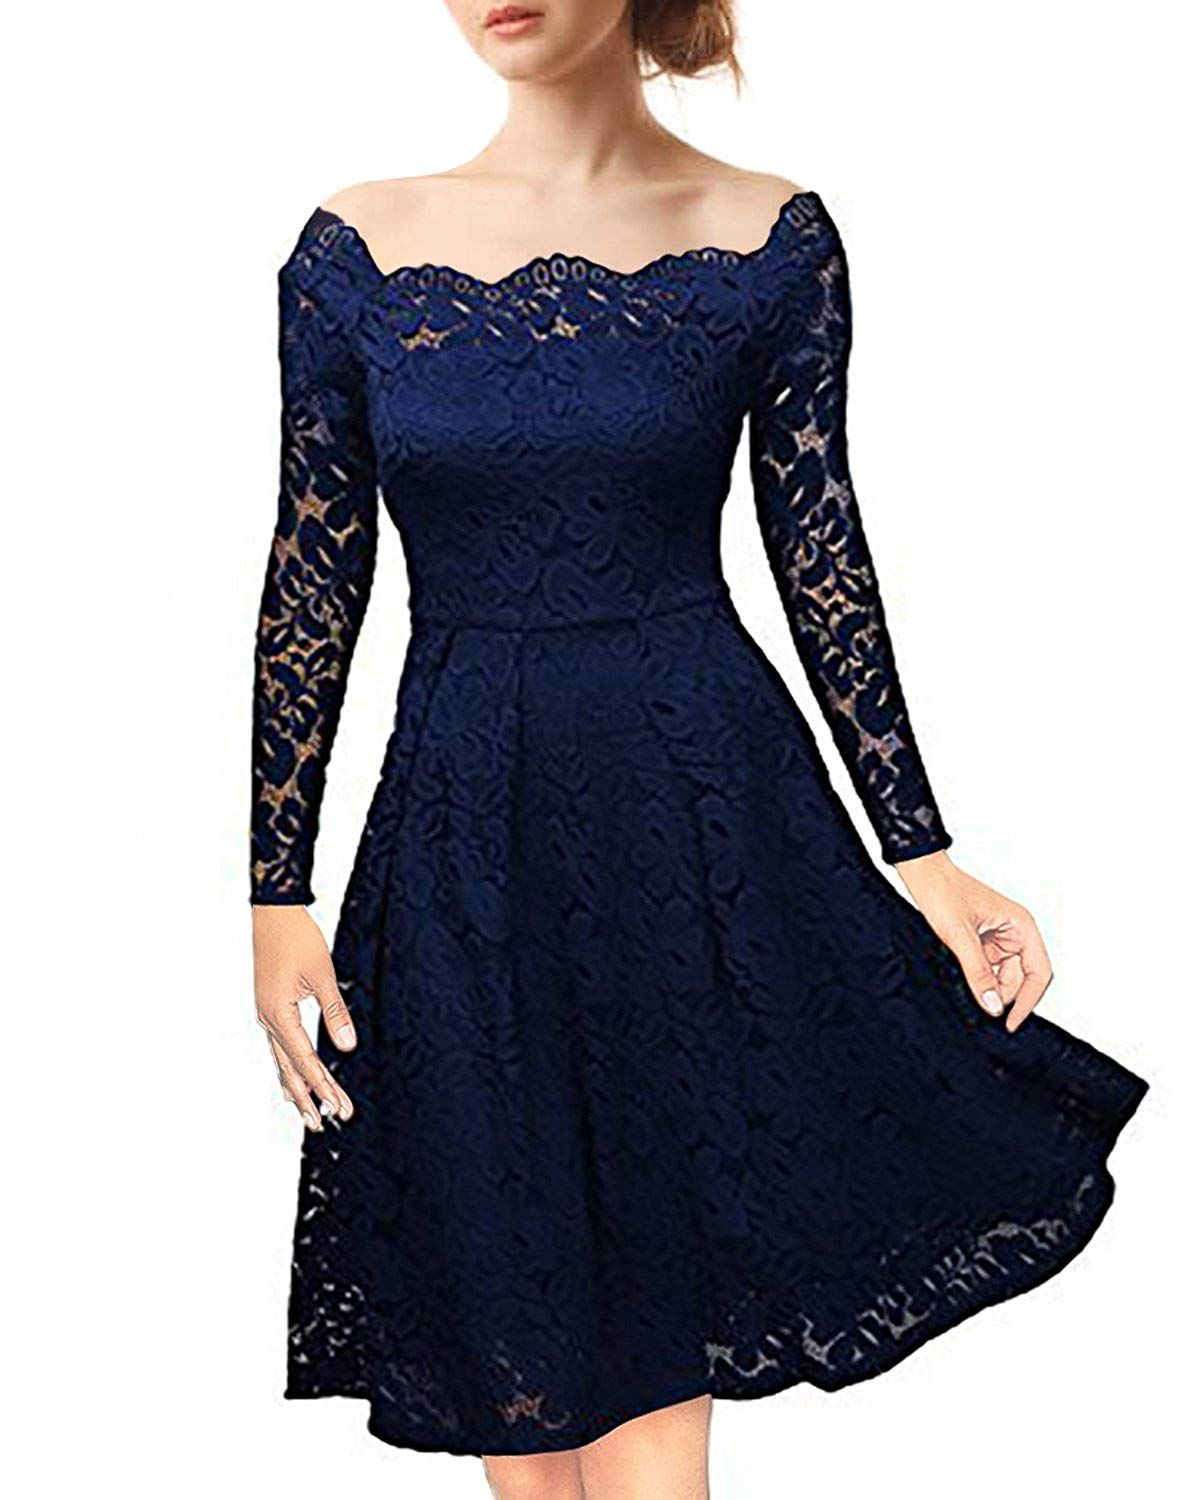 3f41eb3cbbca NALATI Women's Vintage Floral Lace Off-Shoulder Long Sleeves Boat Neck  Cocktail Party Swing Dress